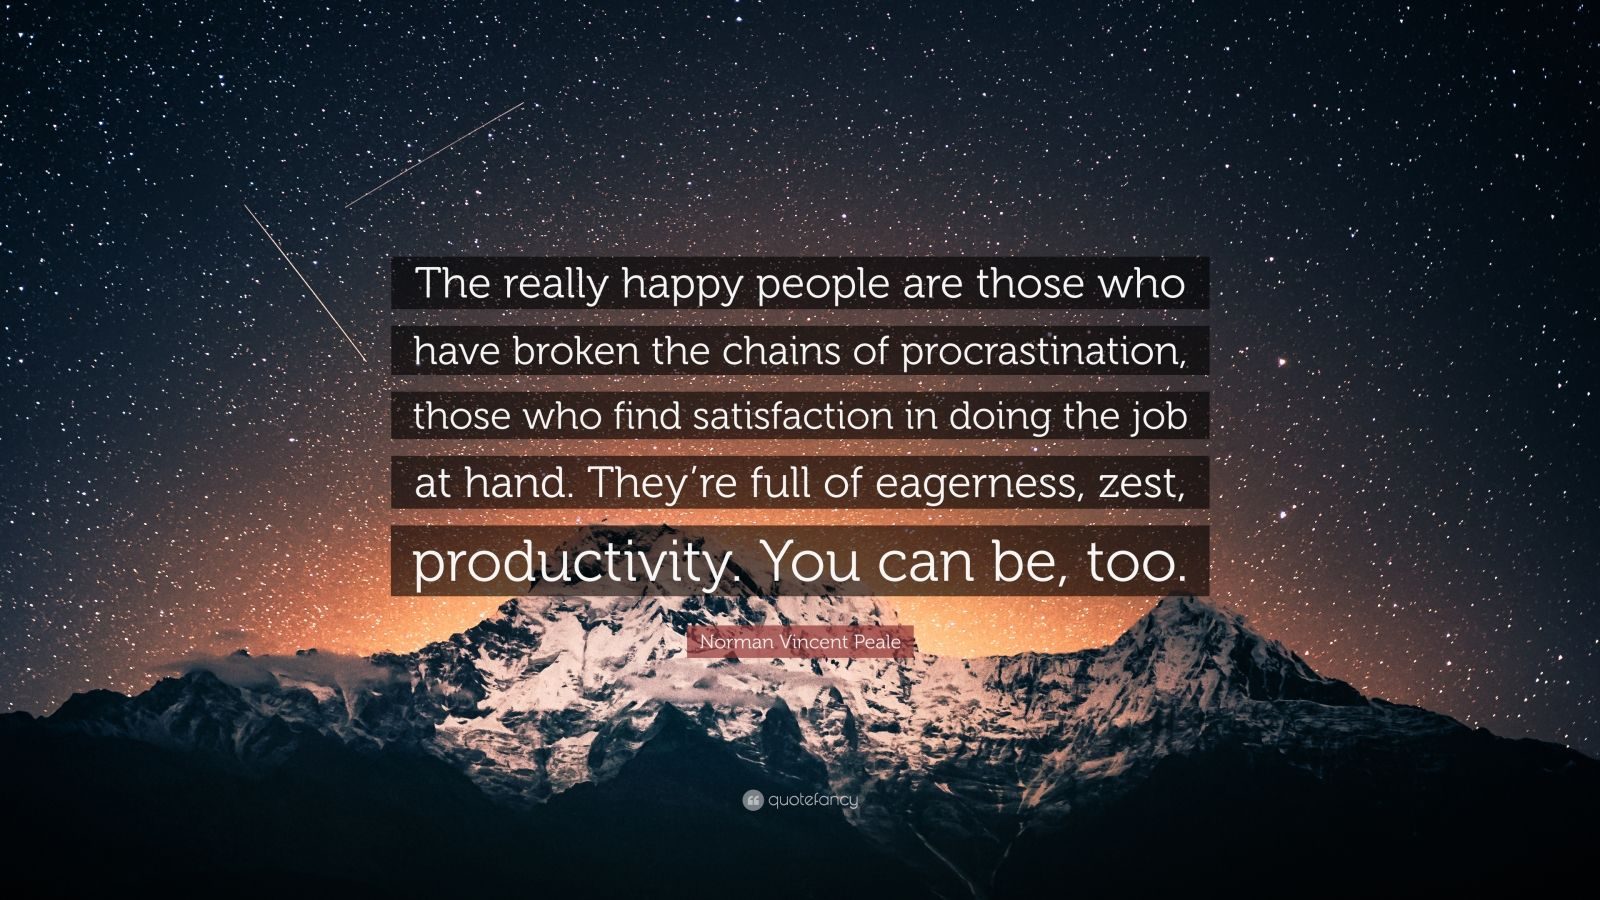 """Norman Vincent Peale Quote: """"The really happy people are those who have broken the chains of procrastination, those who find satisfaction in doing the job at hand. They're full of eagerness, zest, productivity. You can be, too."""""""